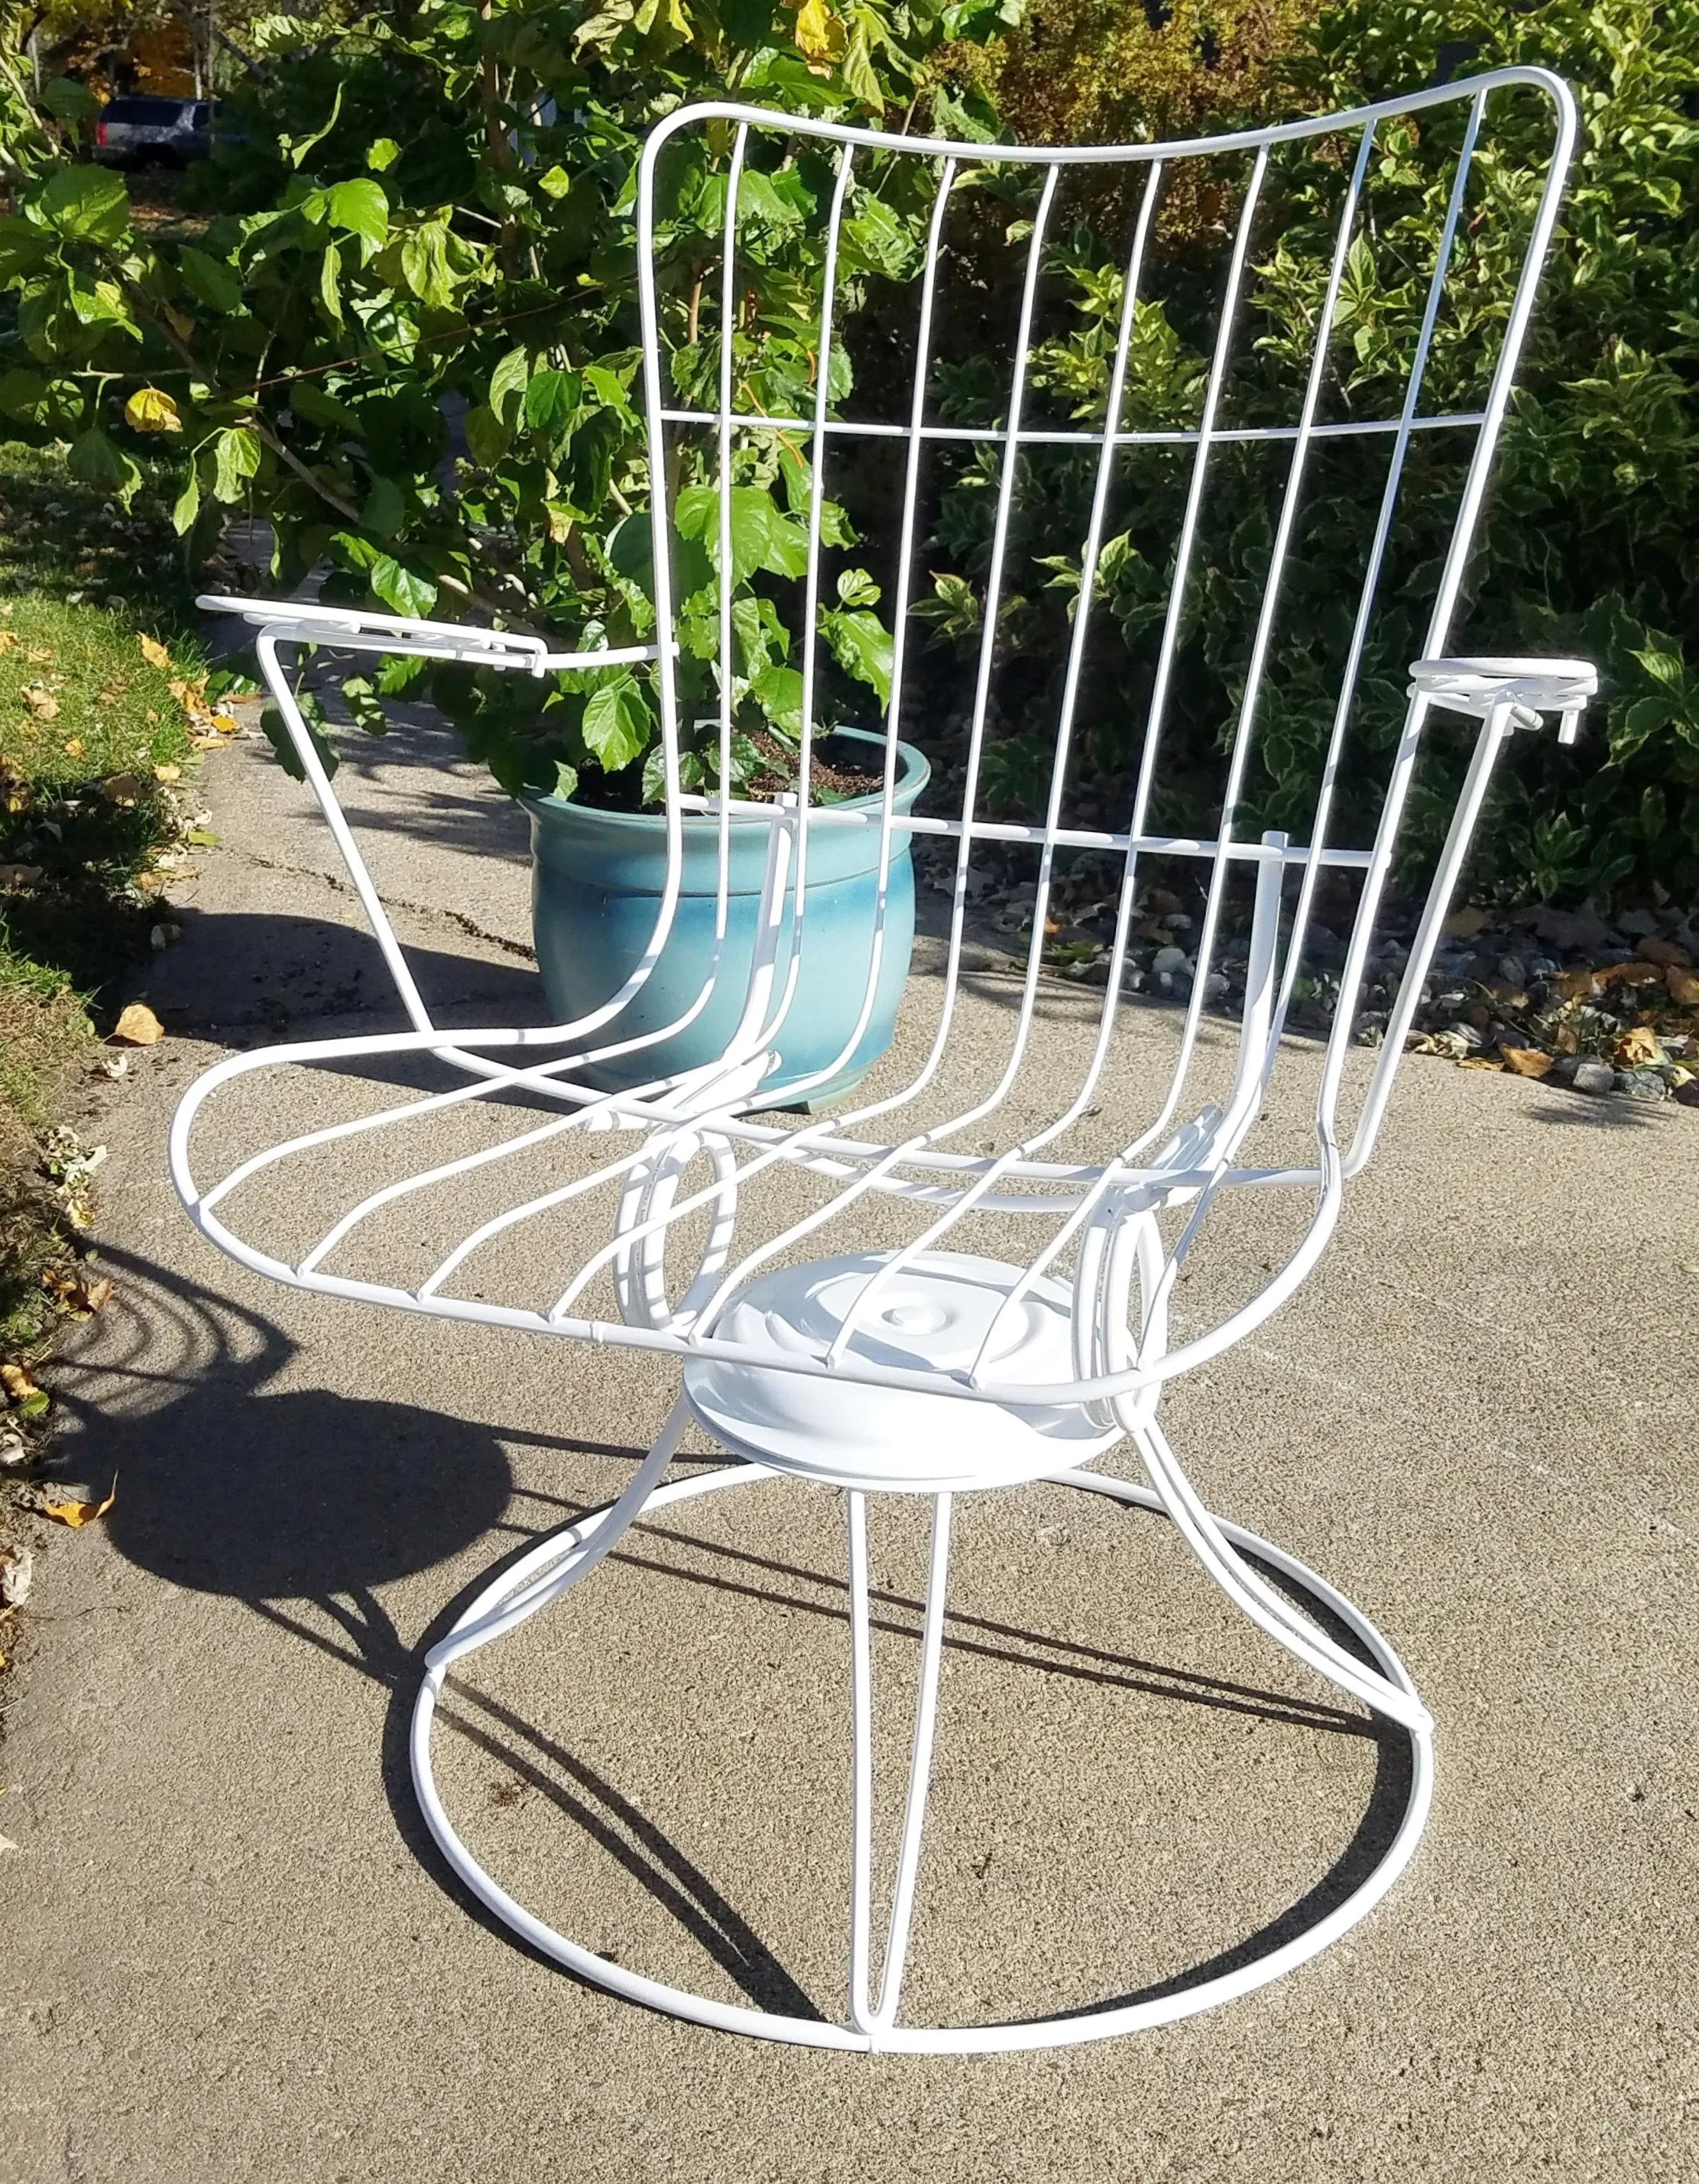 vintage mid century modern patio lounge chair by homecrest fully restored indoor outdoor wire swivel rocker chair in white or black